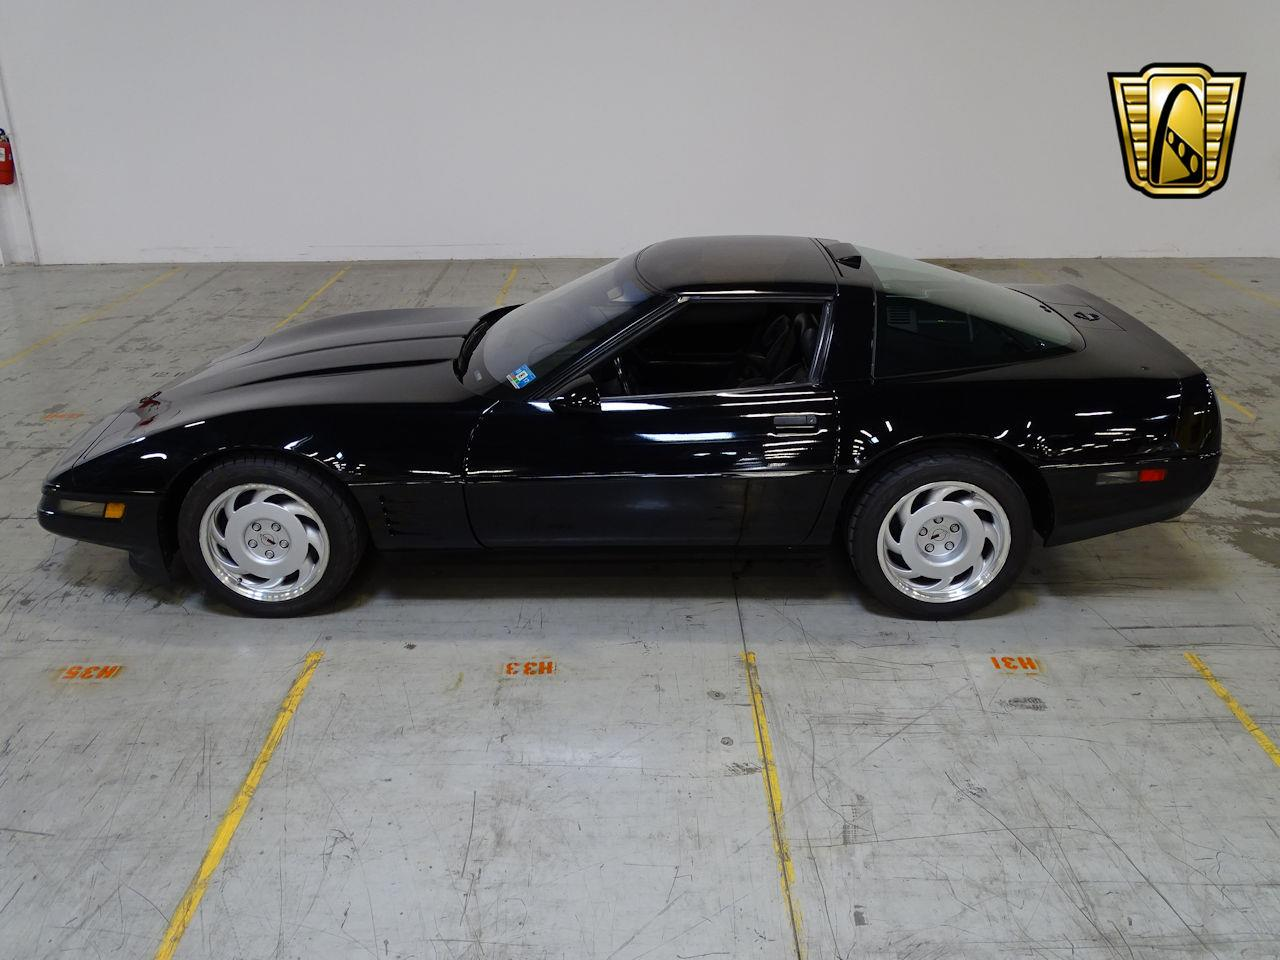 Large Picture of 1991 Chevrolet Corvette located in New Jersey - $25,995.00 - L1SC